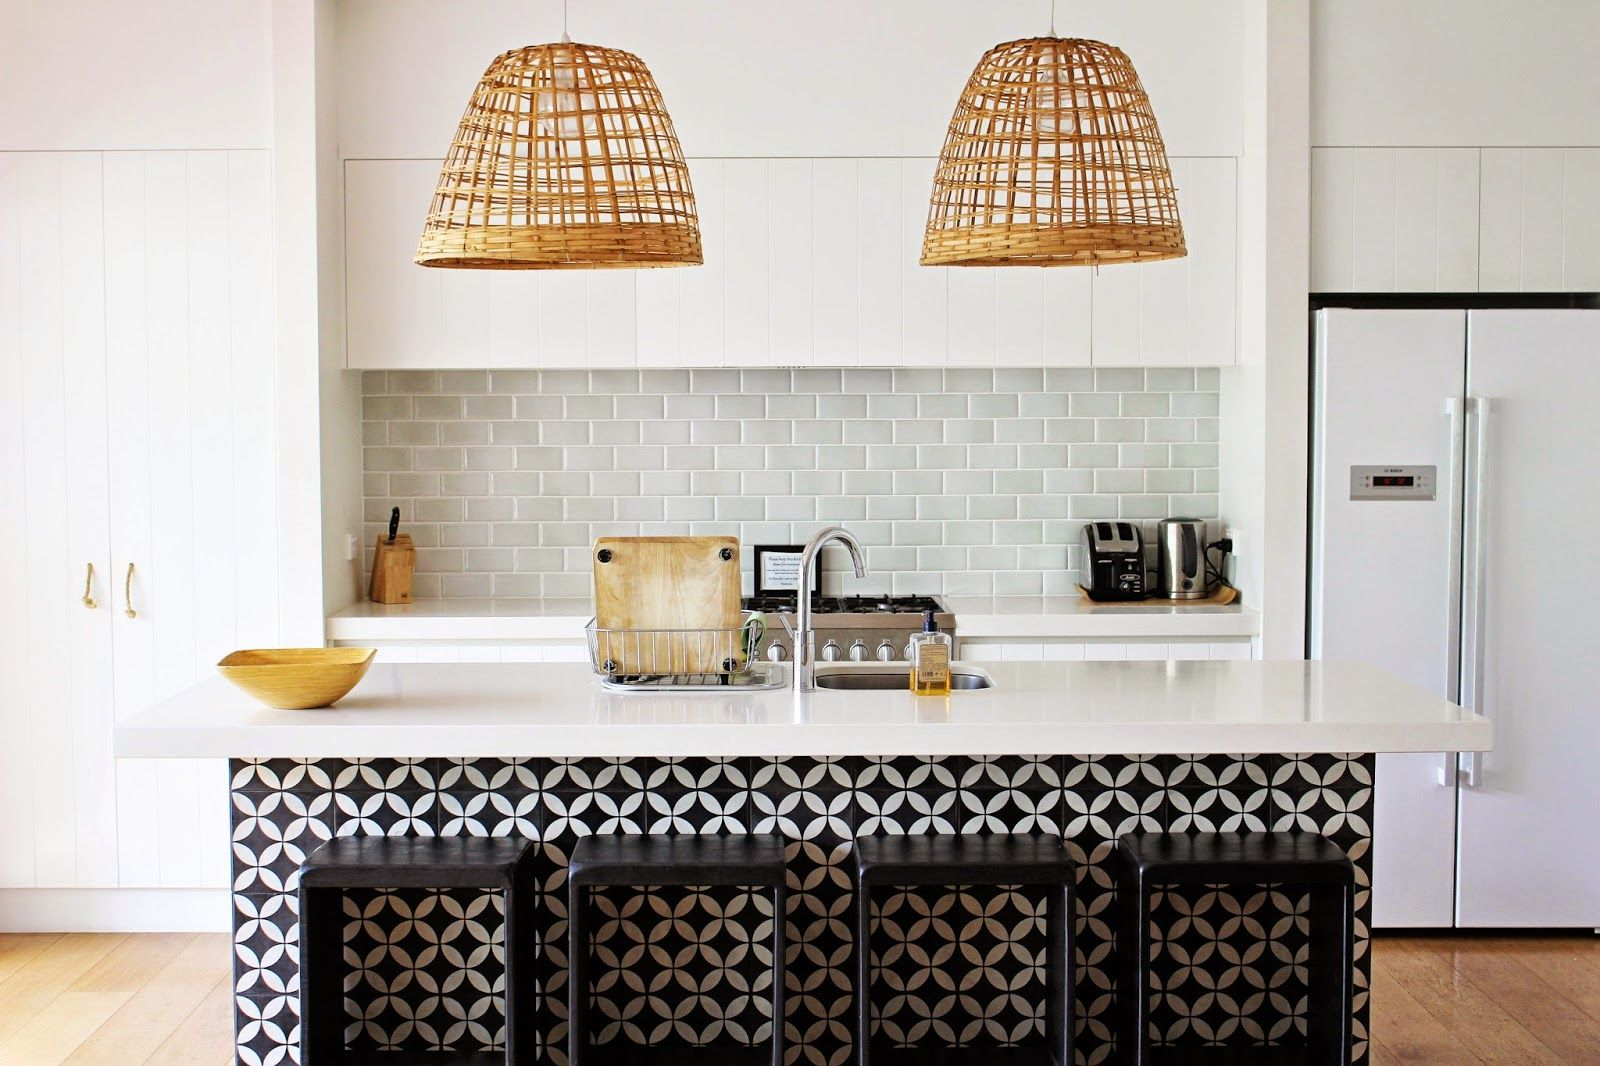 Granada Tiles Cannes Cement Tiles Cover The Kitchen Island